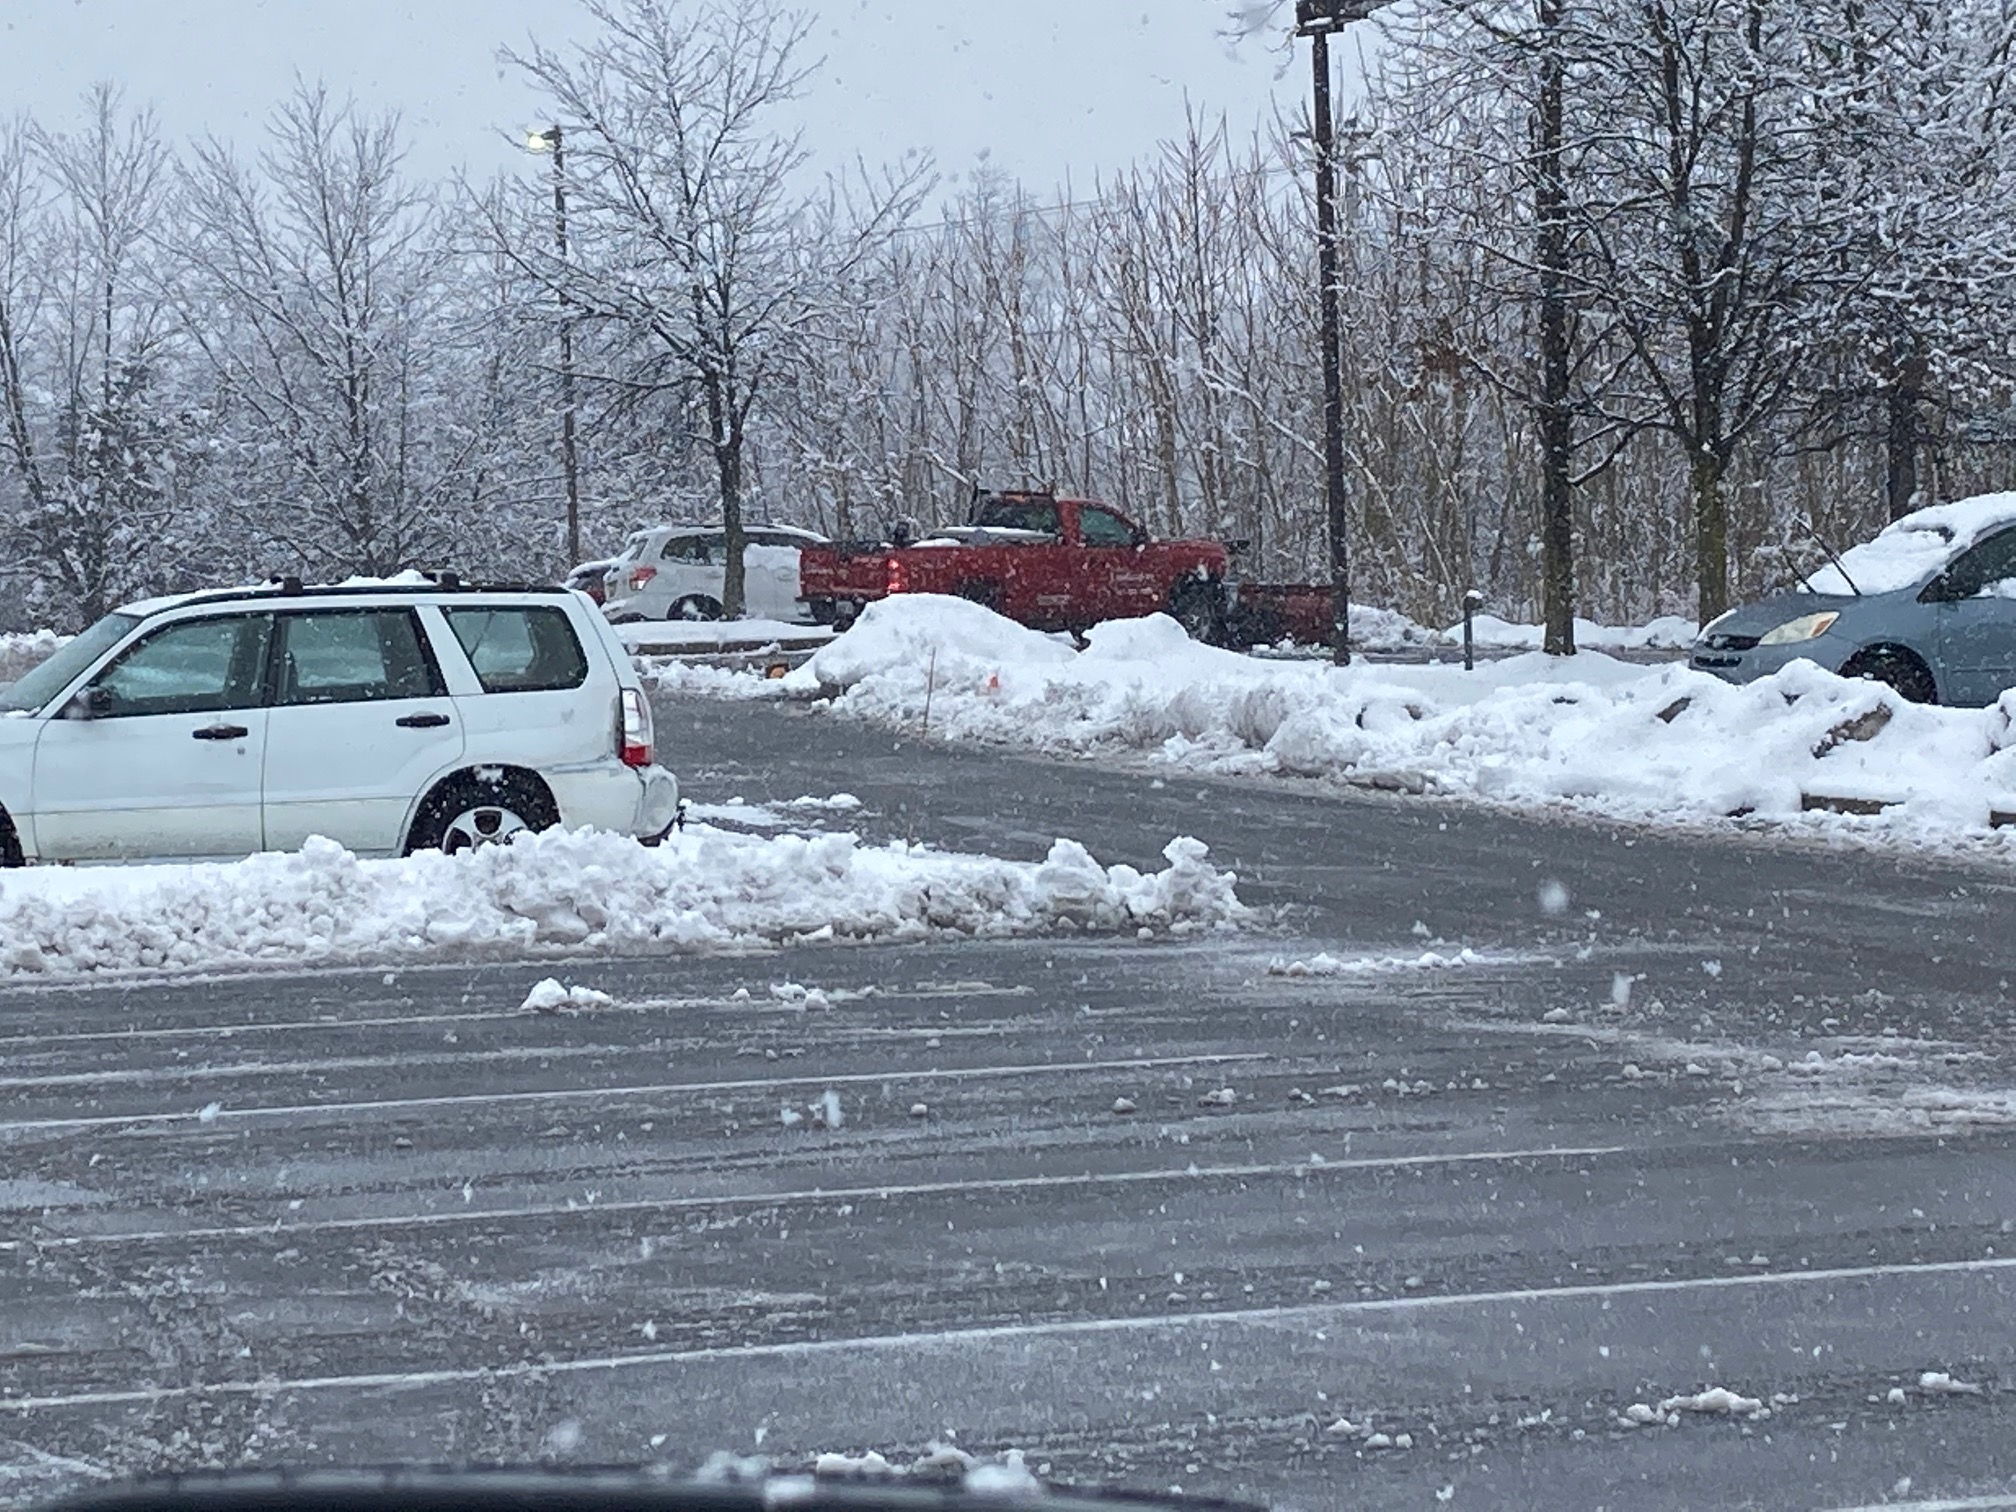 snow removal from parking lot in MD